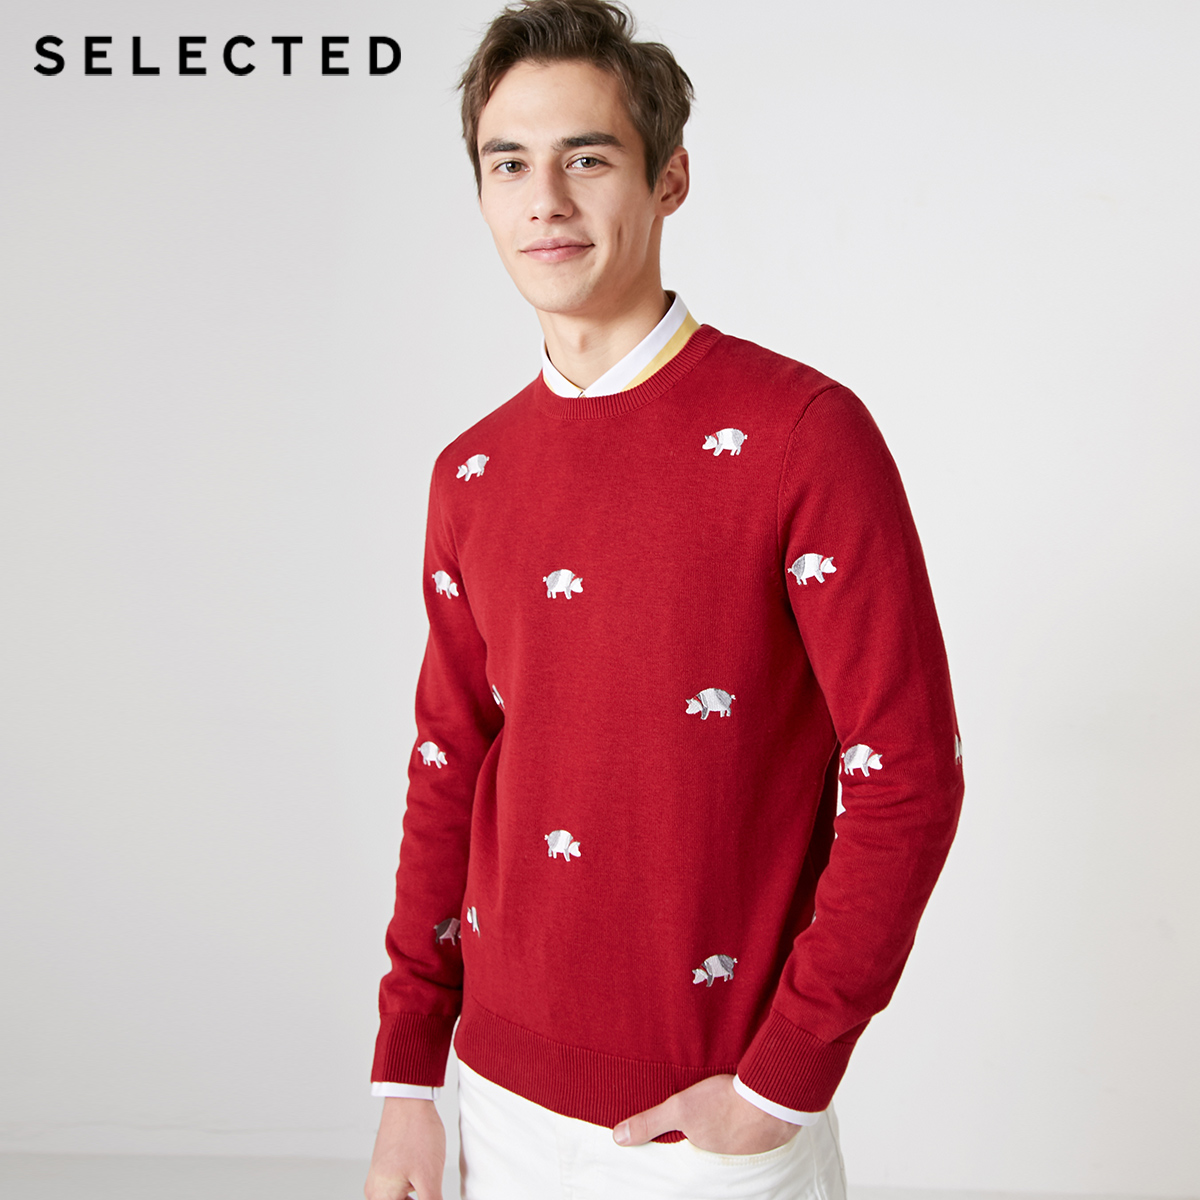 SELECTED Men's Spring Zodiac Print Pullover Knitted 100% Cotton Casual Sweater Clothes S | 419124551